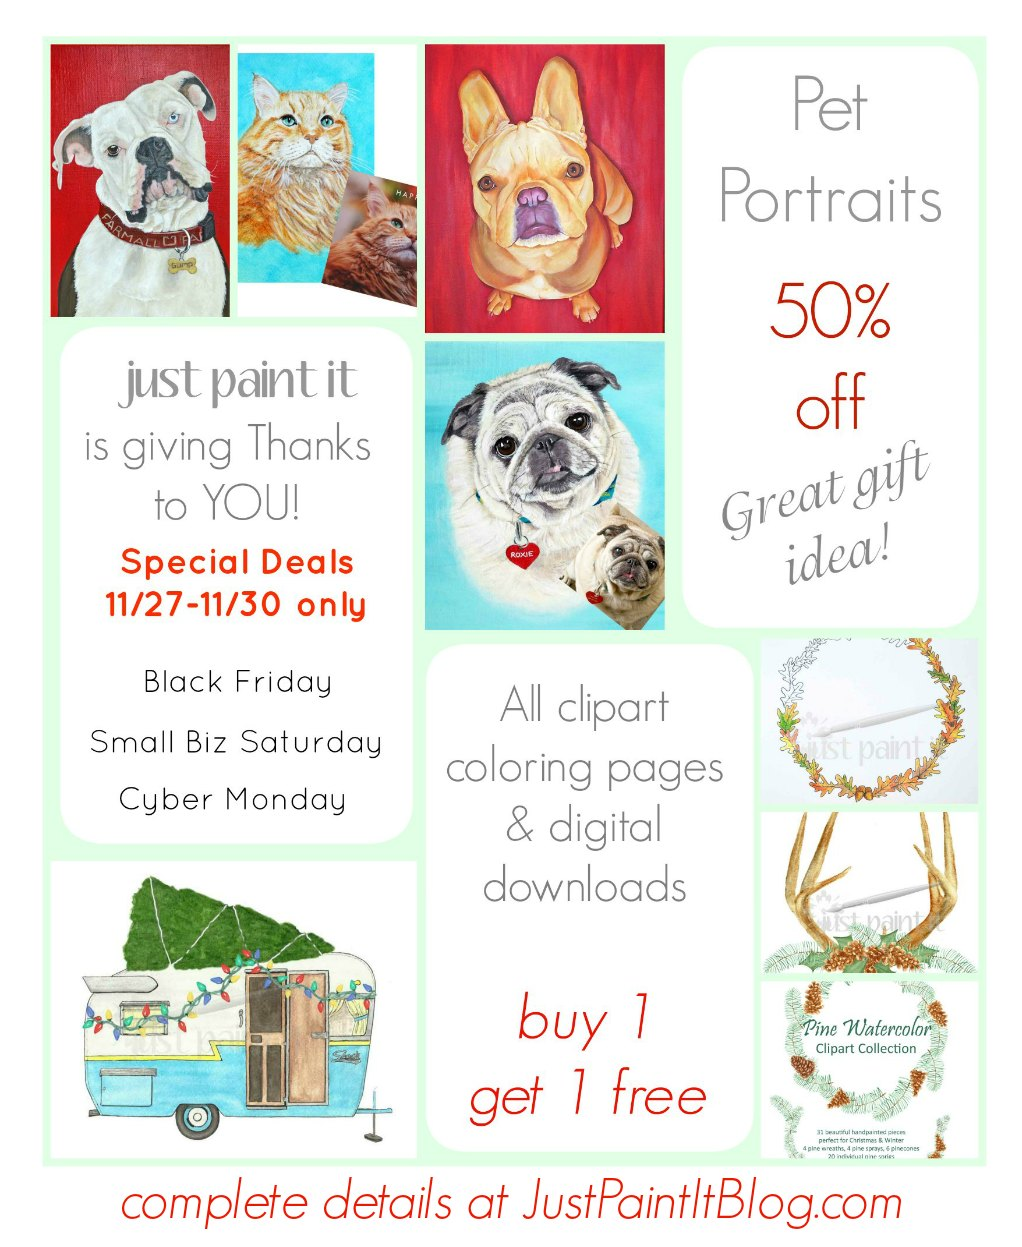 Black Friday Specials on Pet Portraits!